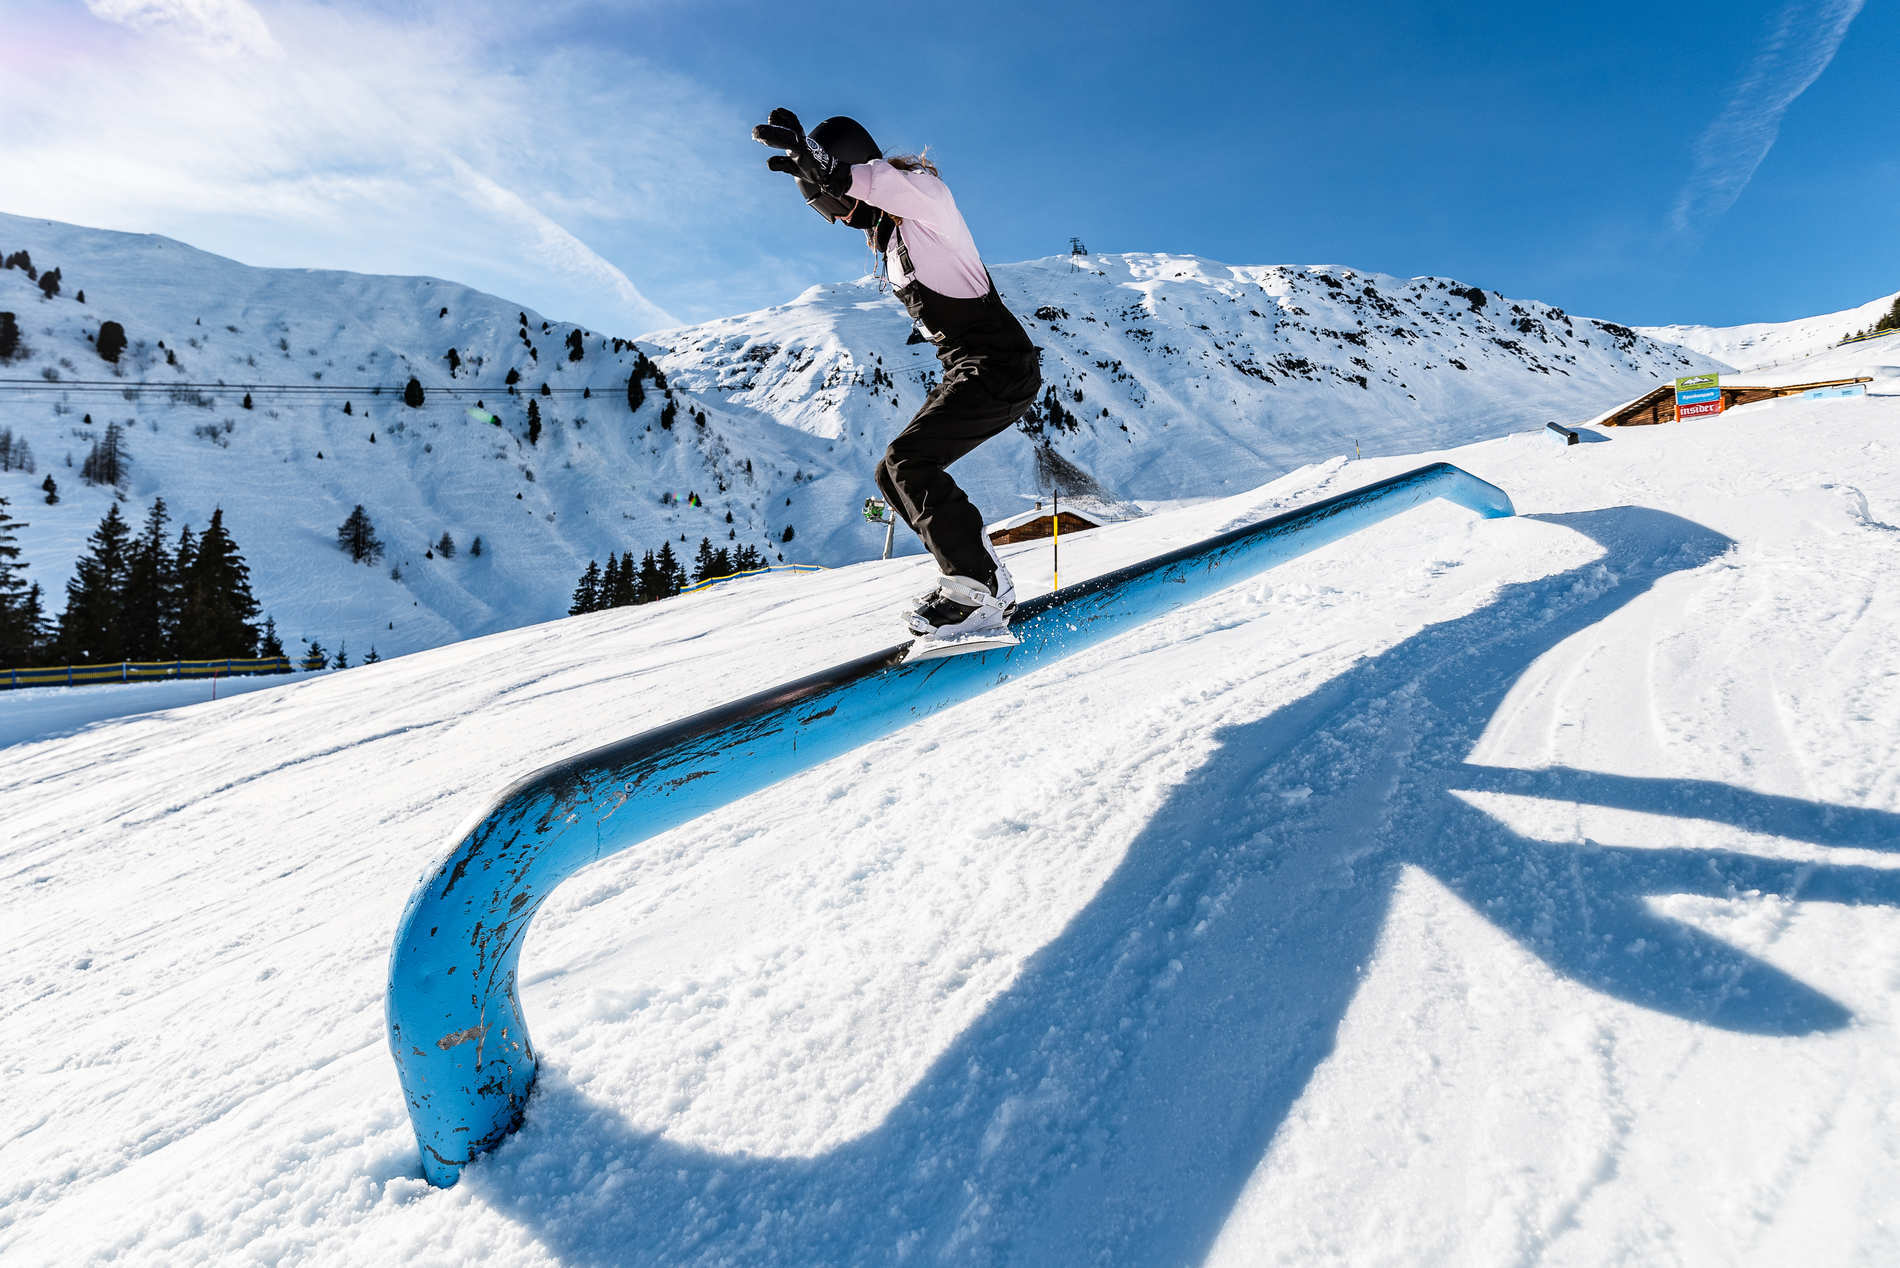 mayrhofen 16 02 2019 action sb unknown rider christian riefenberg qparks 48